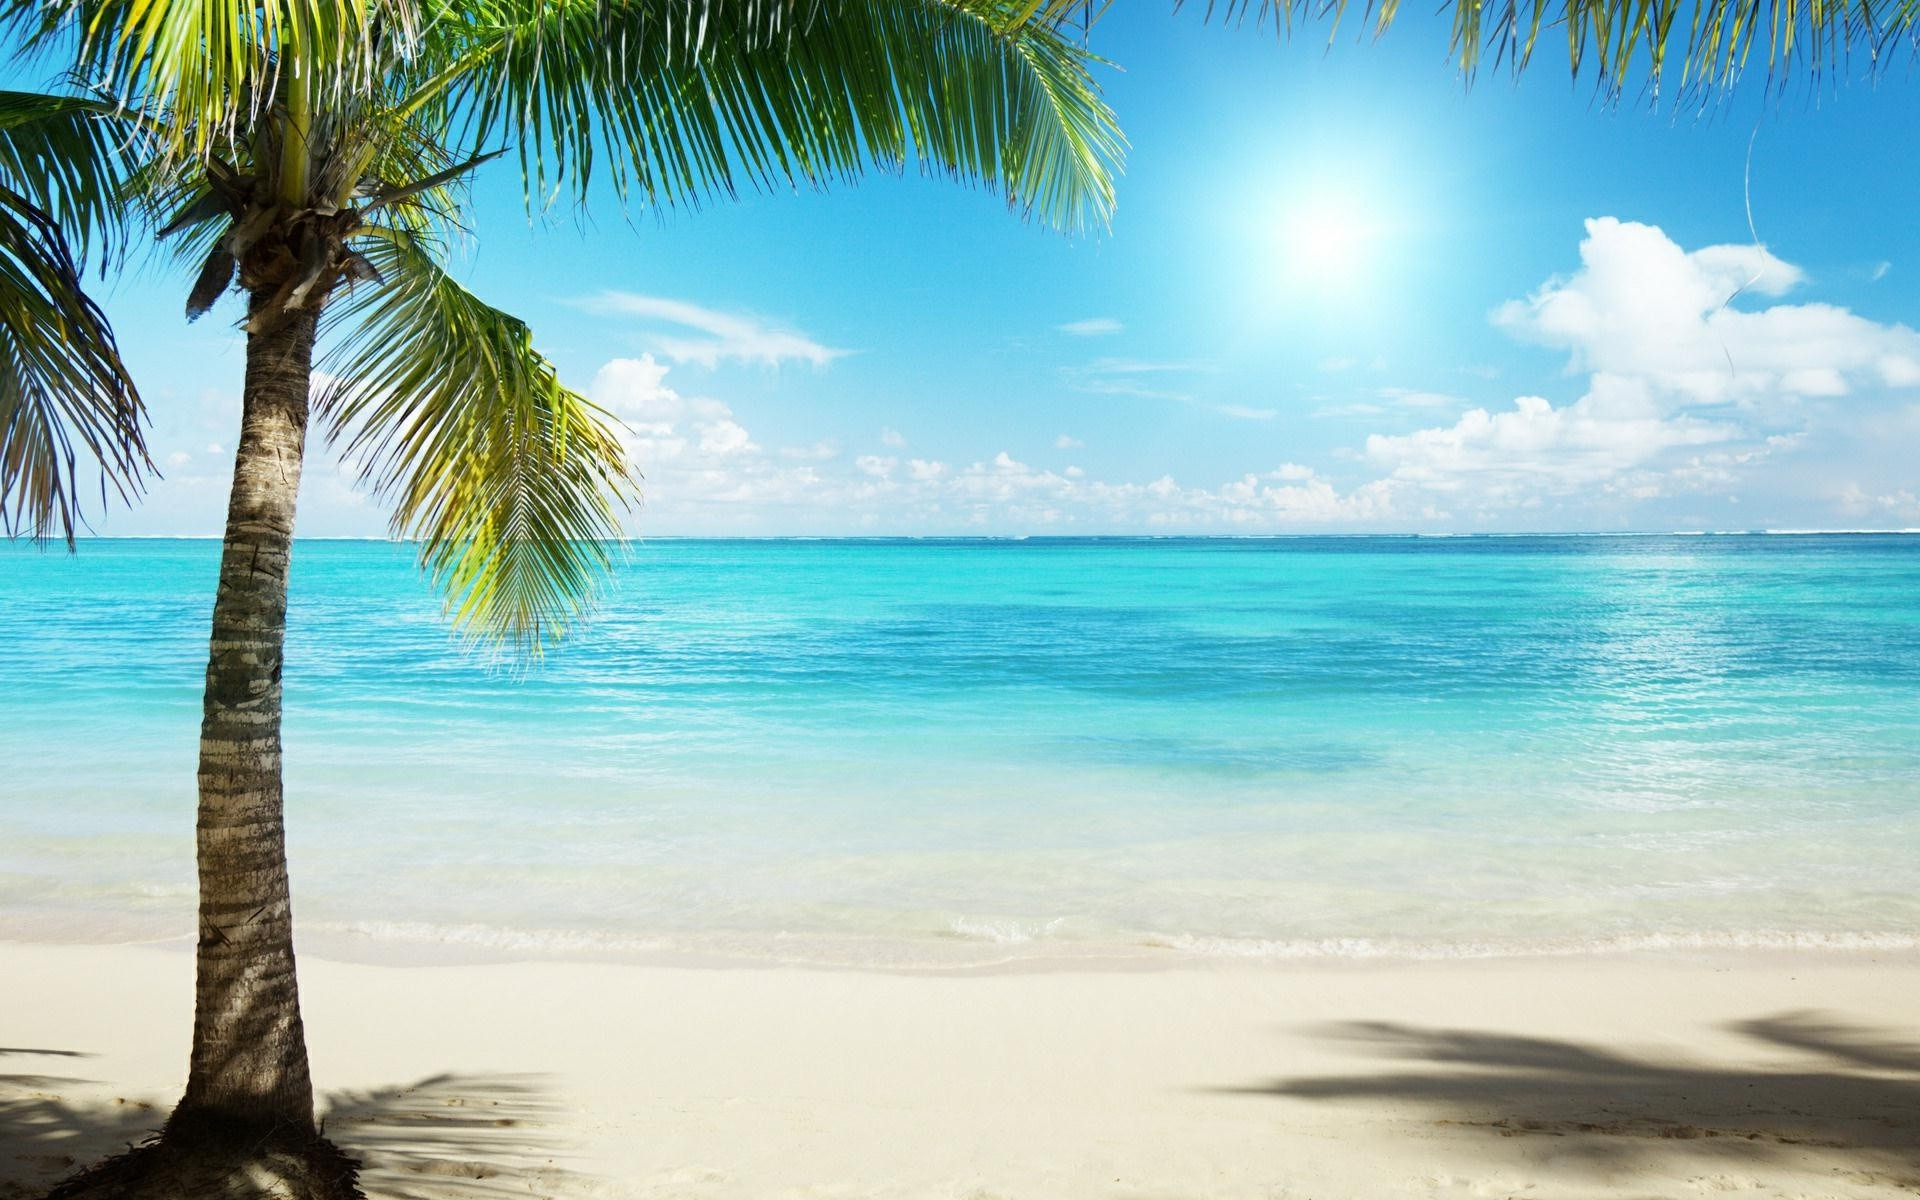 Tropical Beach Backgrounds Hd Widescreen 11 HD Wallpapers